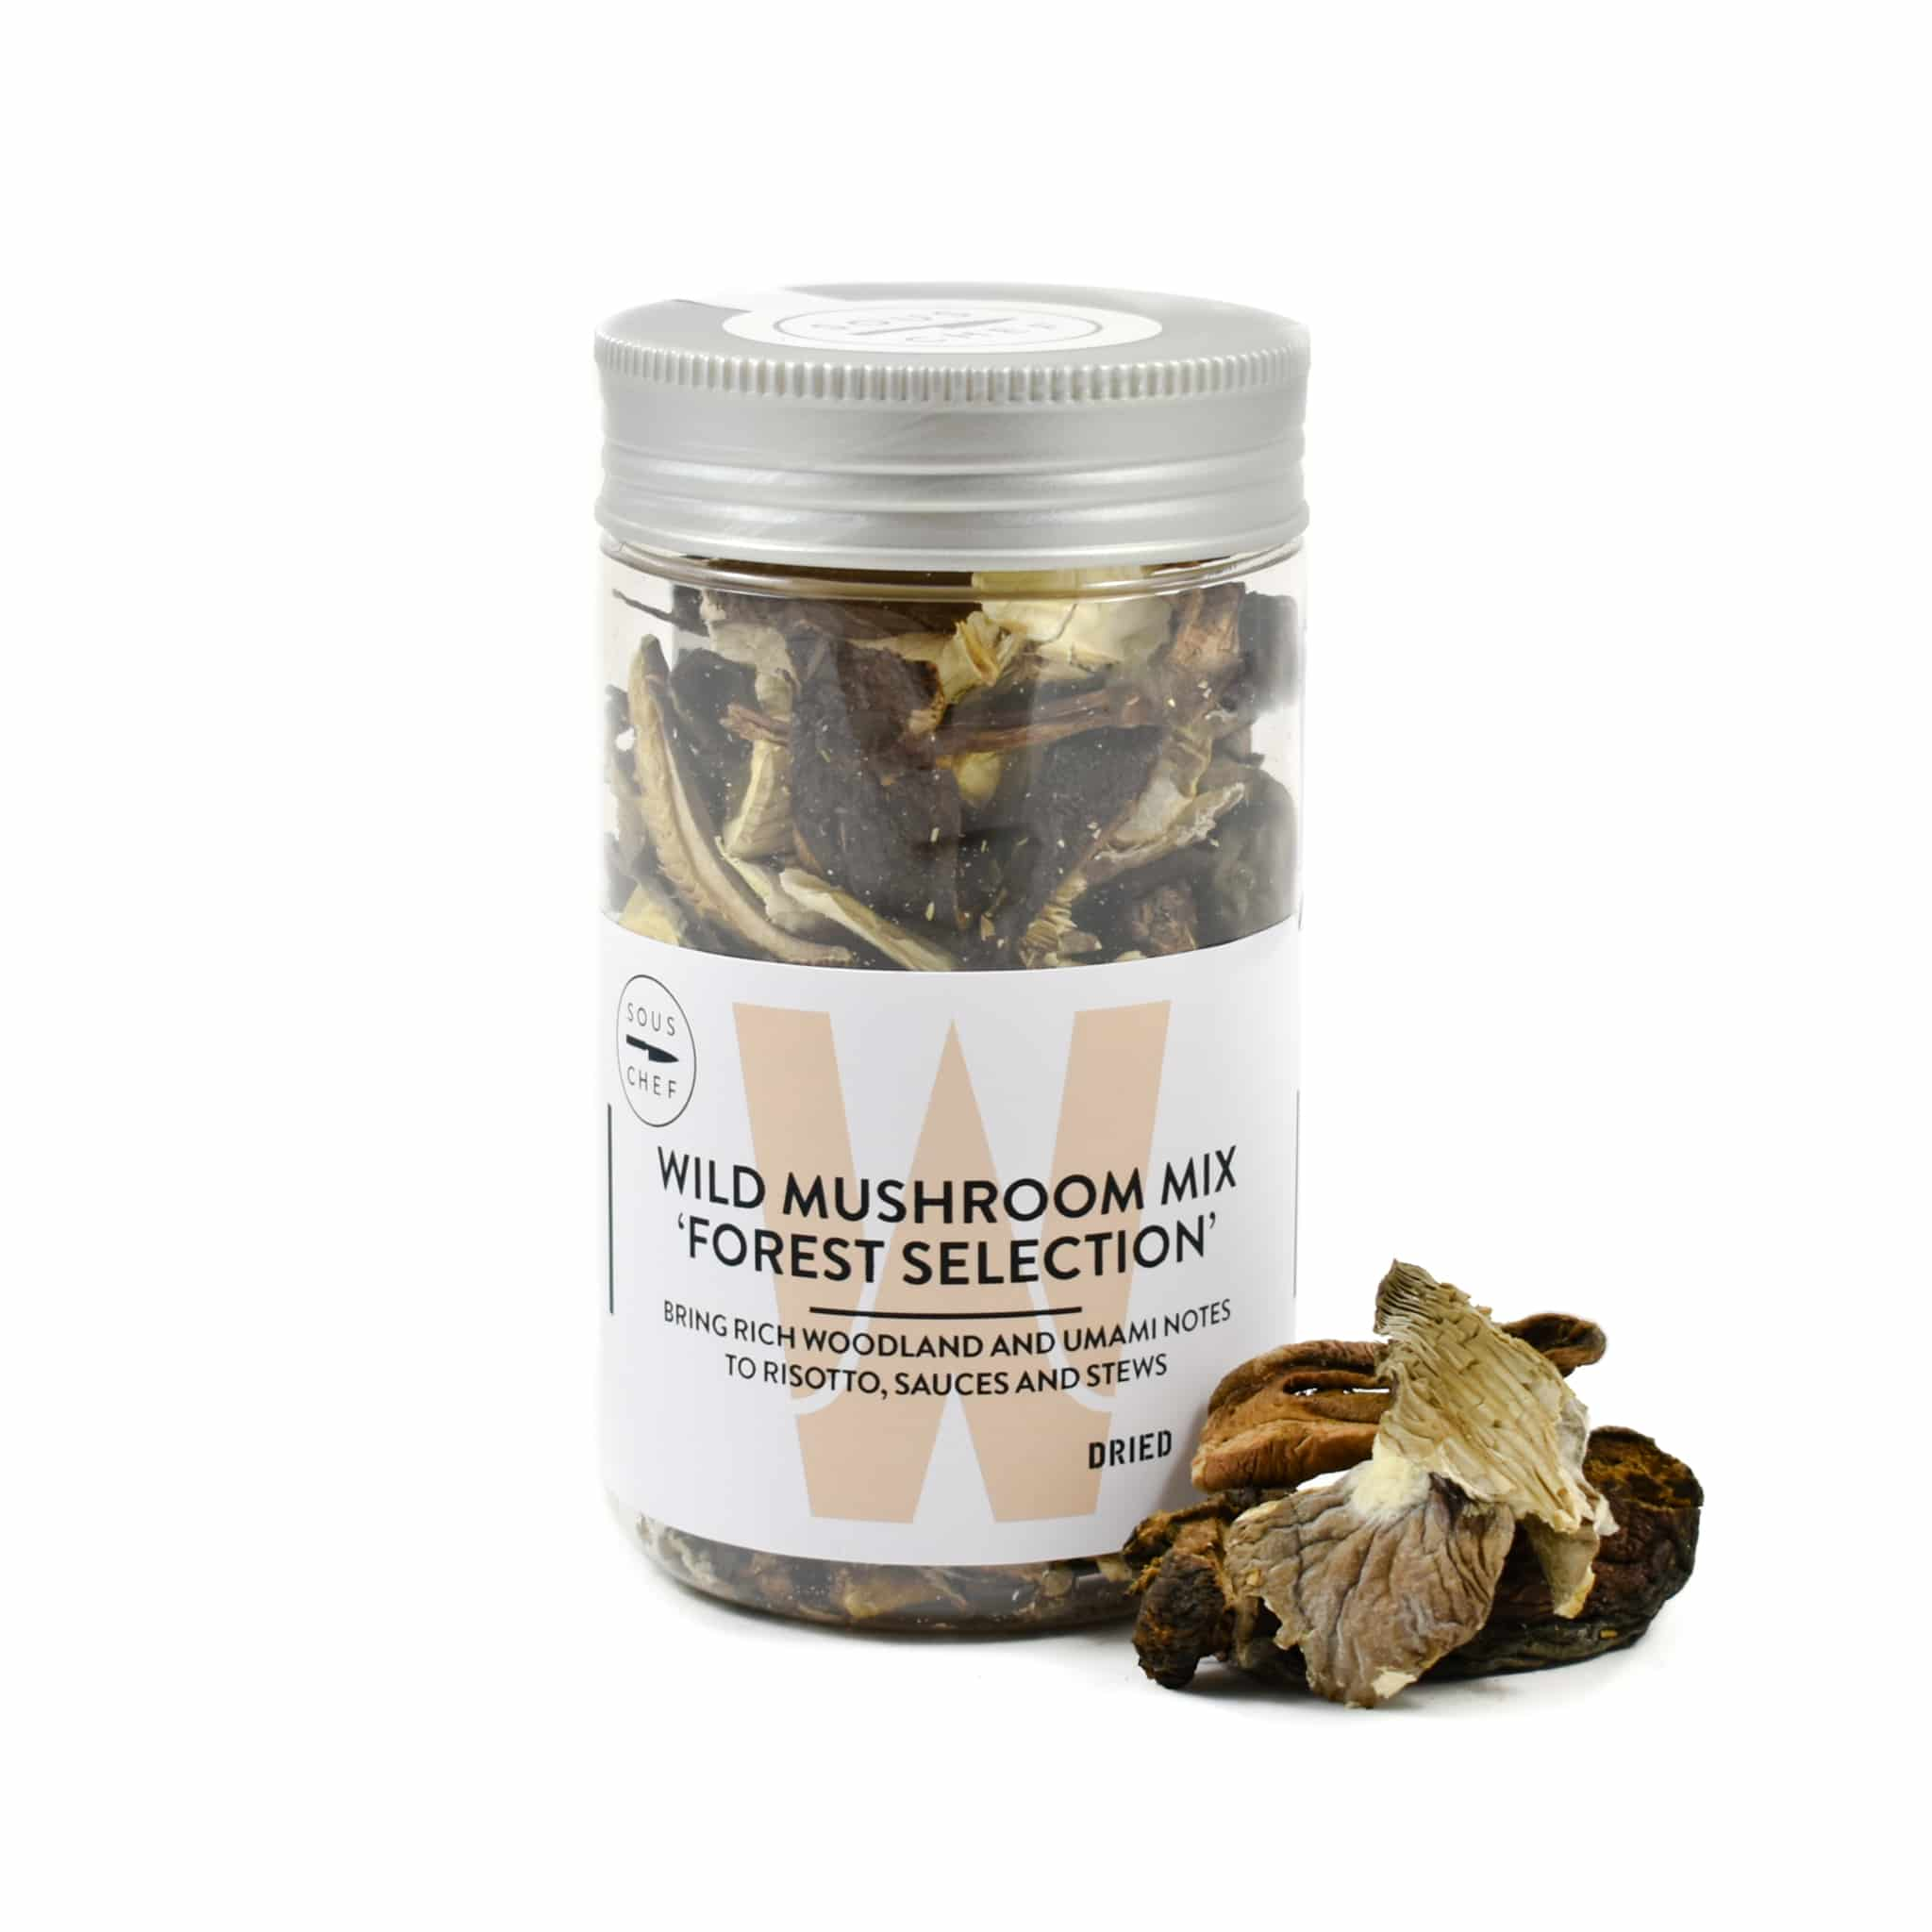 Wild Mushroom Mix - 'Forest Selection'